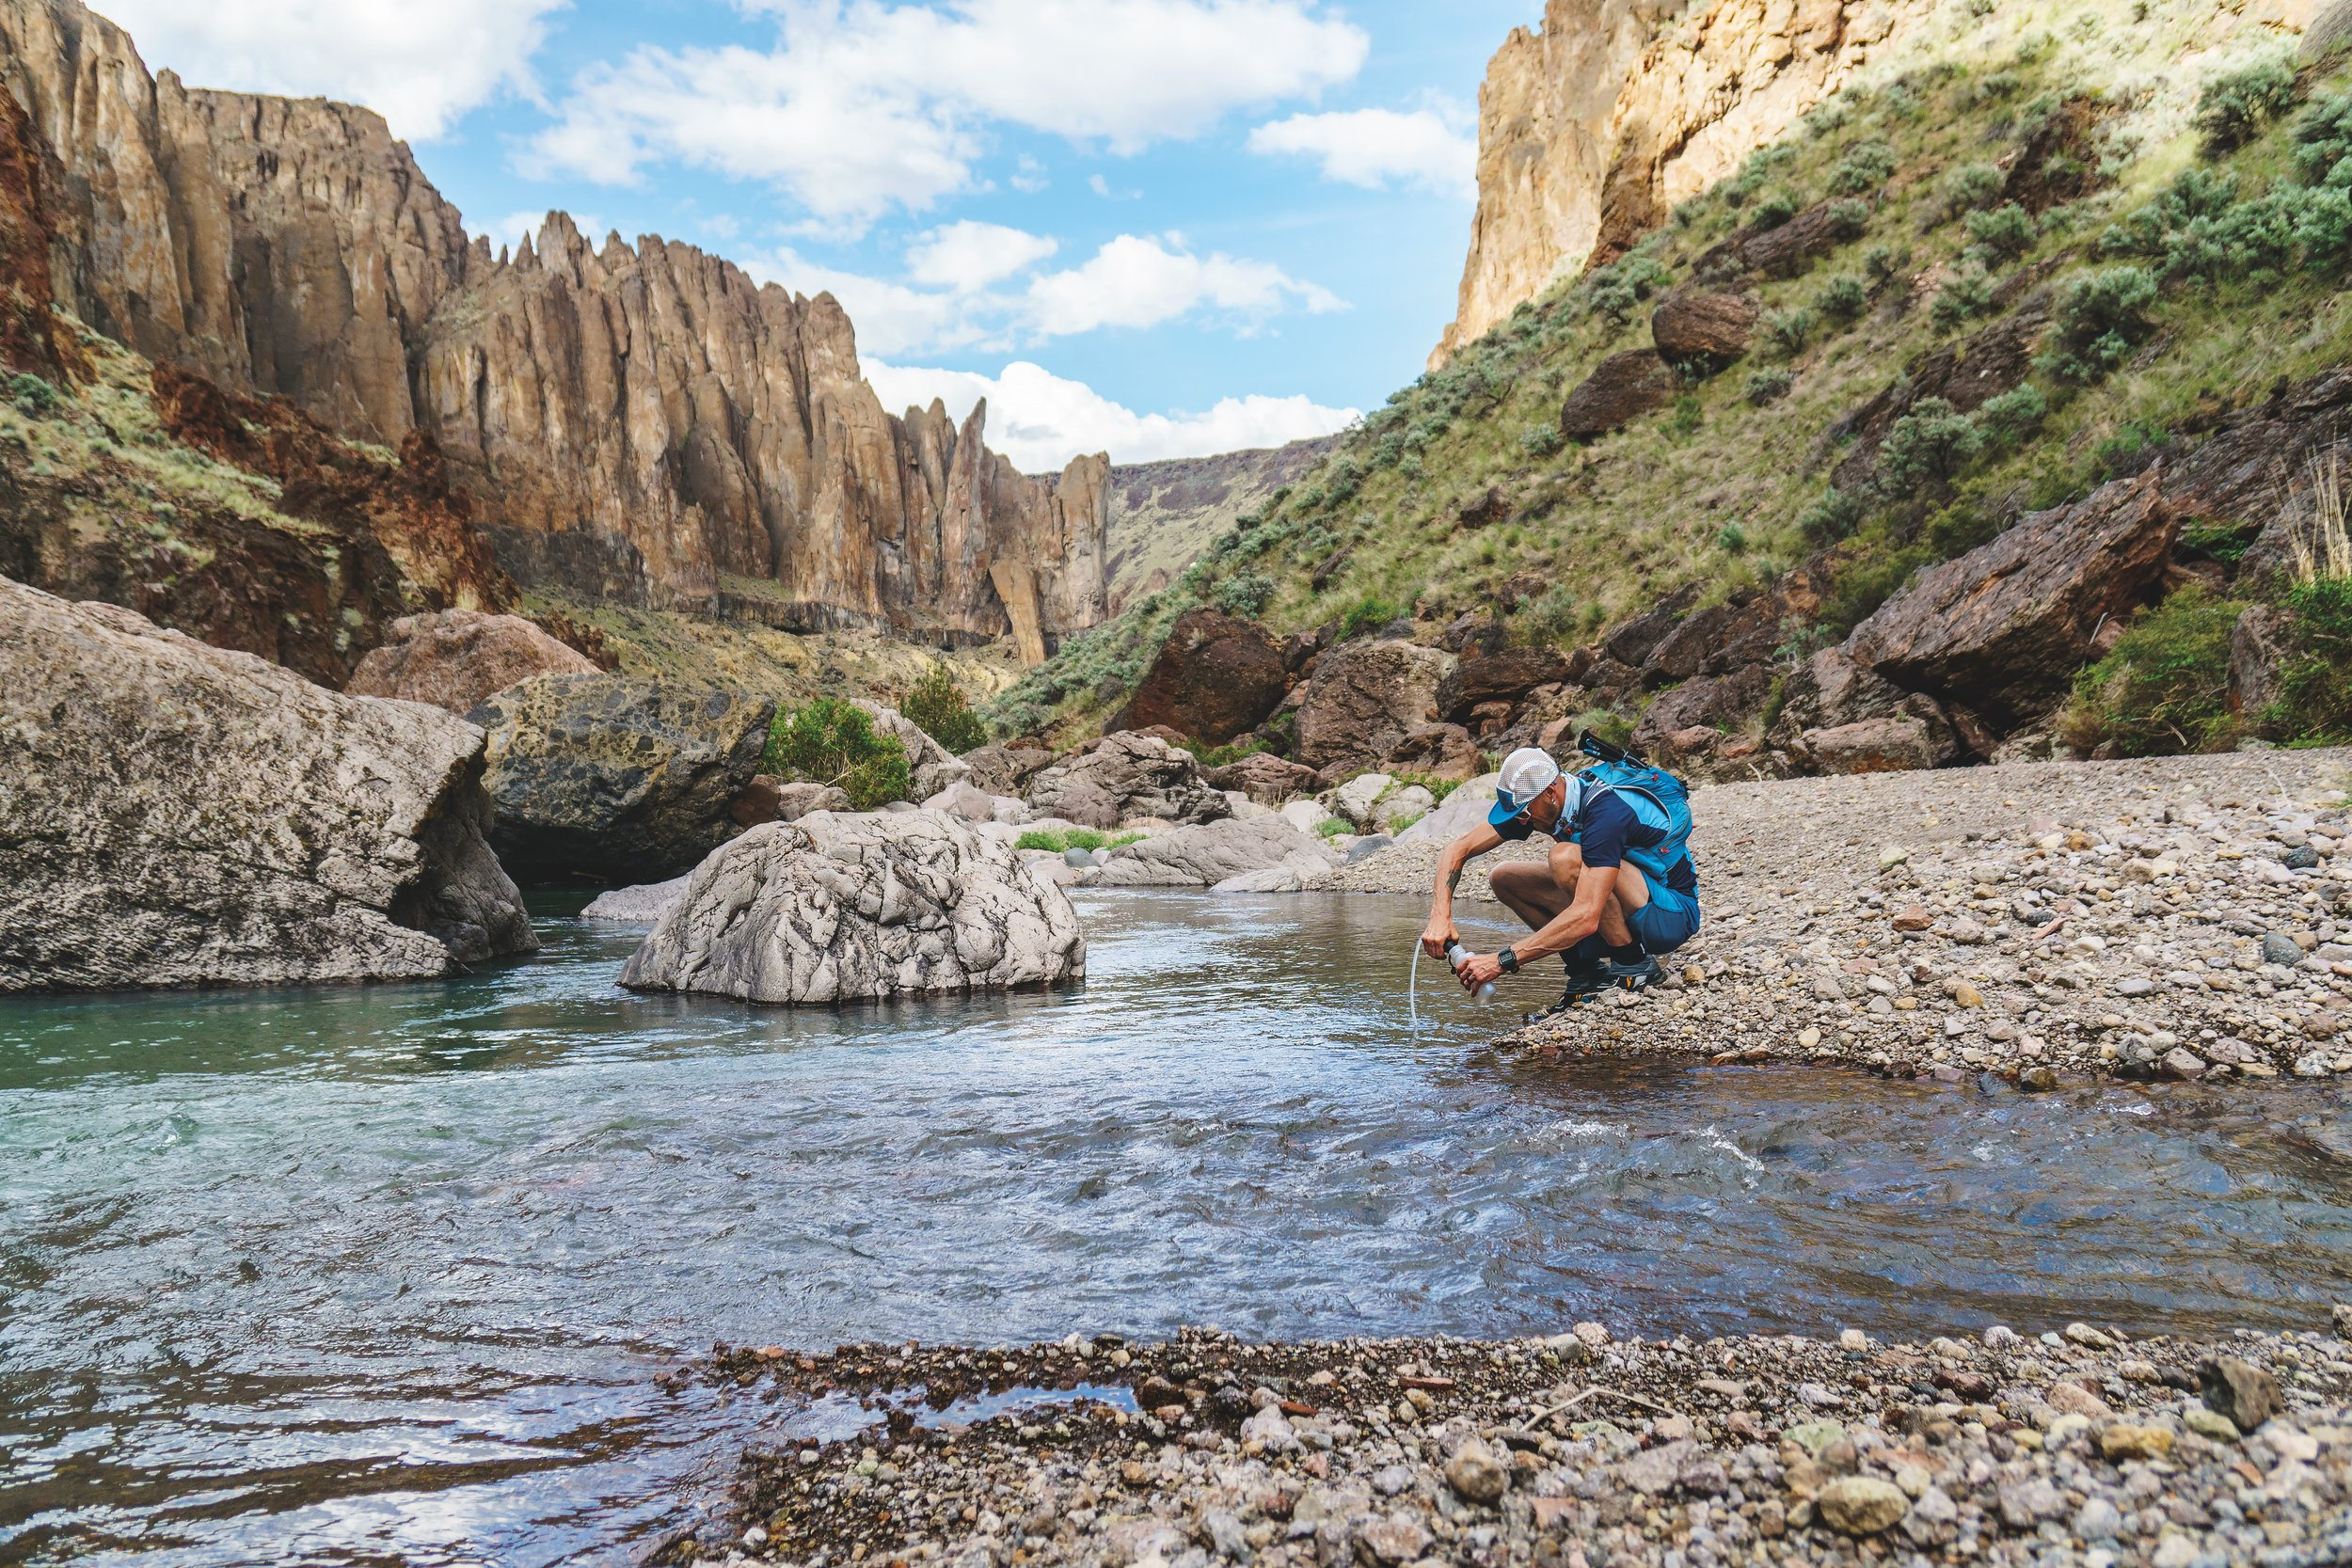 """""""Jeff Browning bellies up to the bar at the local watering hole. Owyhee Canyonlands, Oregon."""" Photo credit to Fredrik Marmsater."""